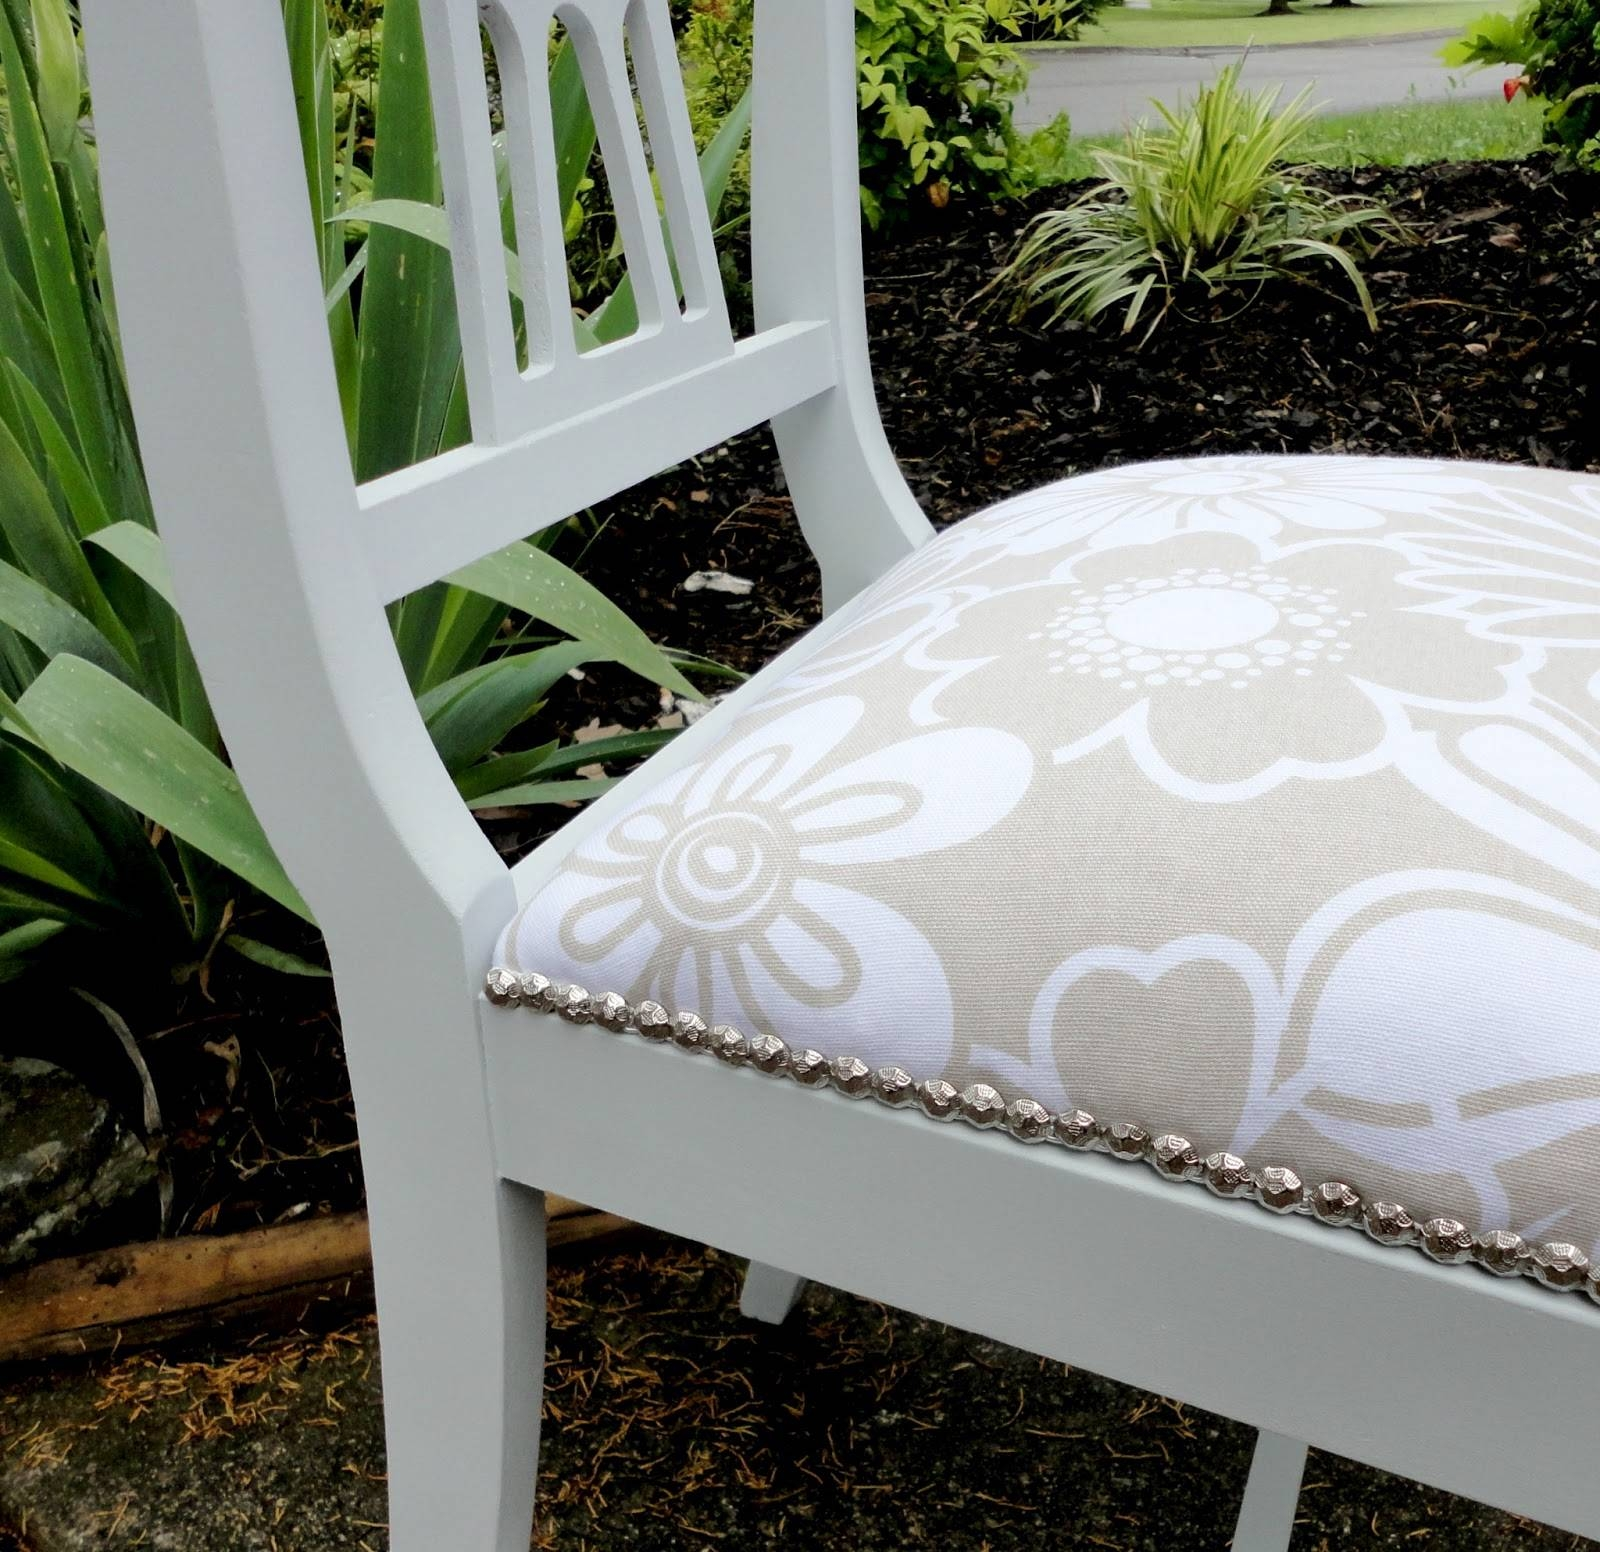 Livelovediy: How To Reupholster A Chair within Reupholster Sofas Cushions (Image 12 of 15)